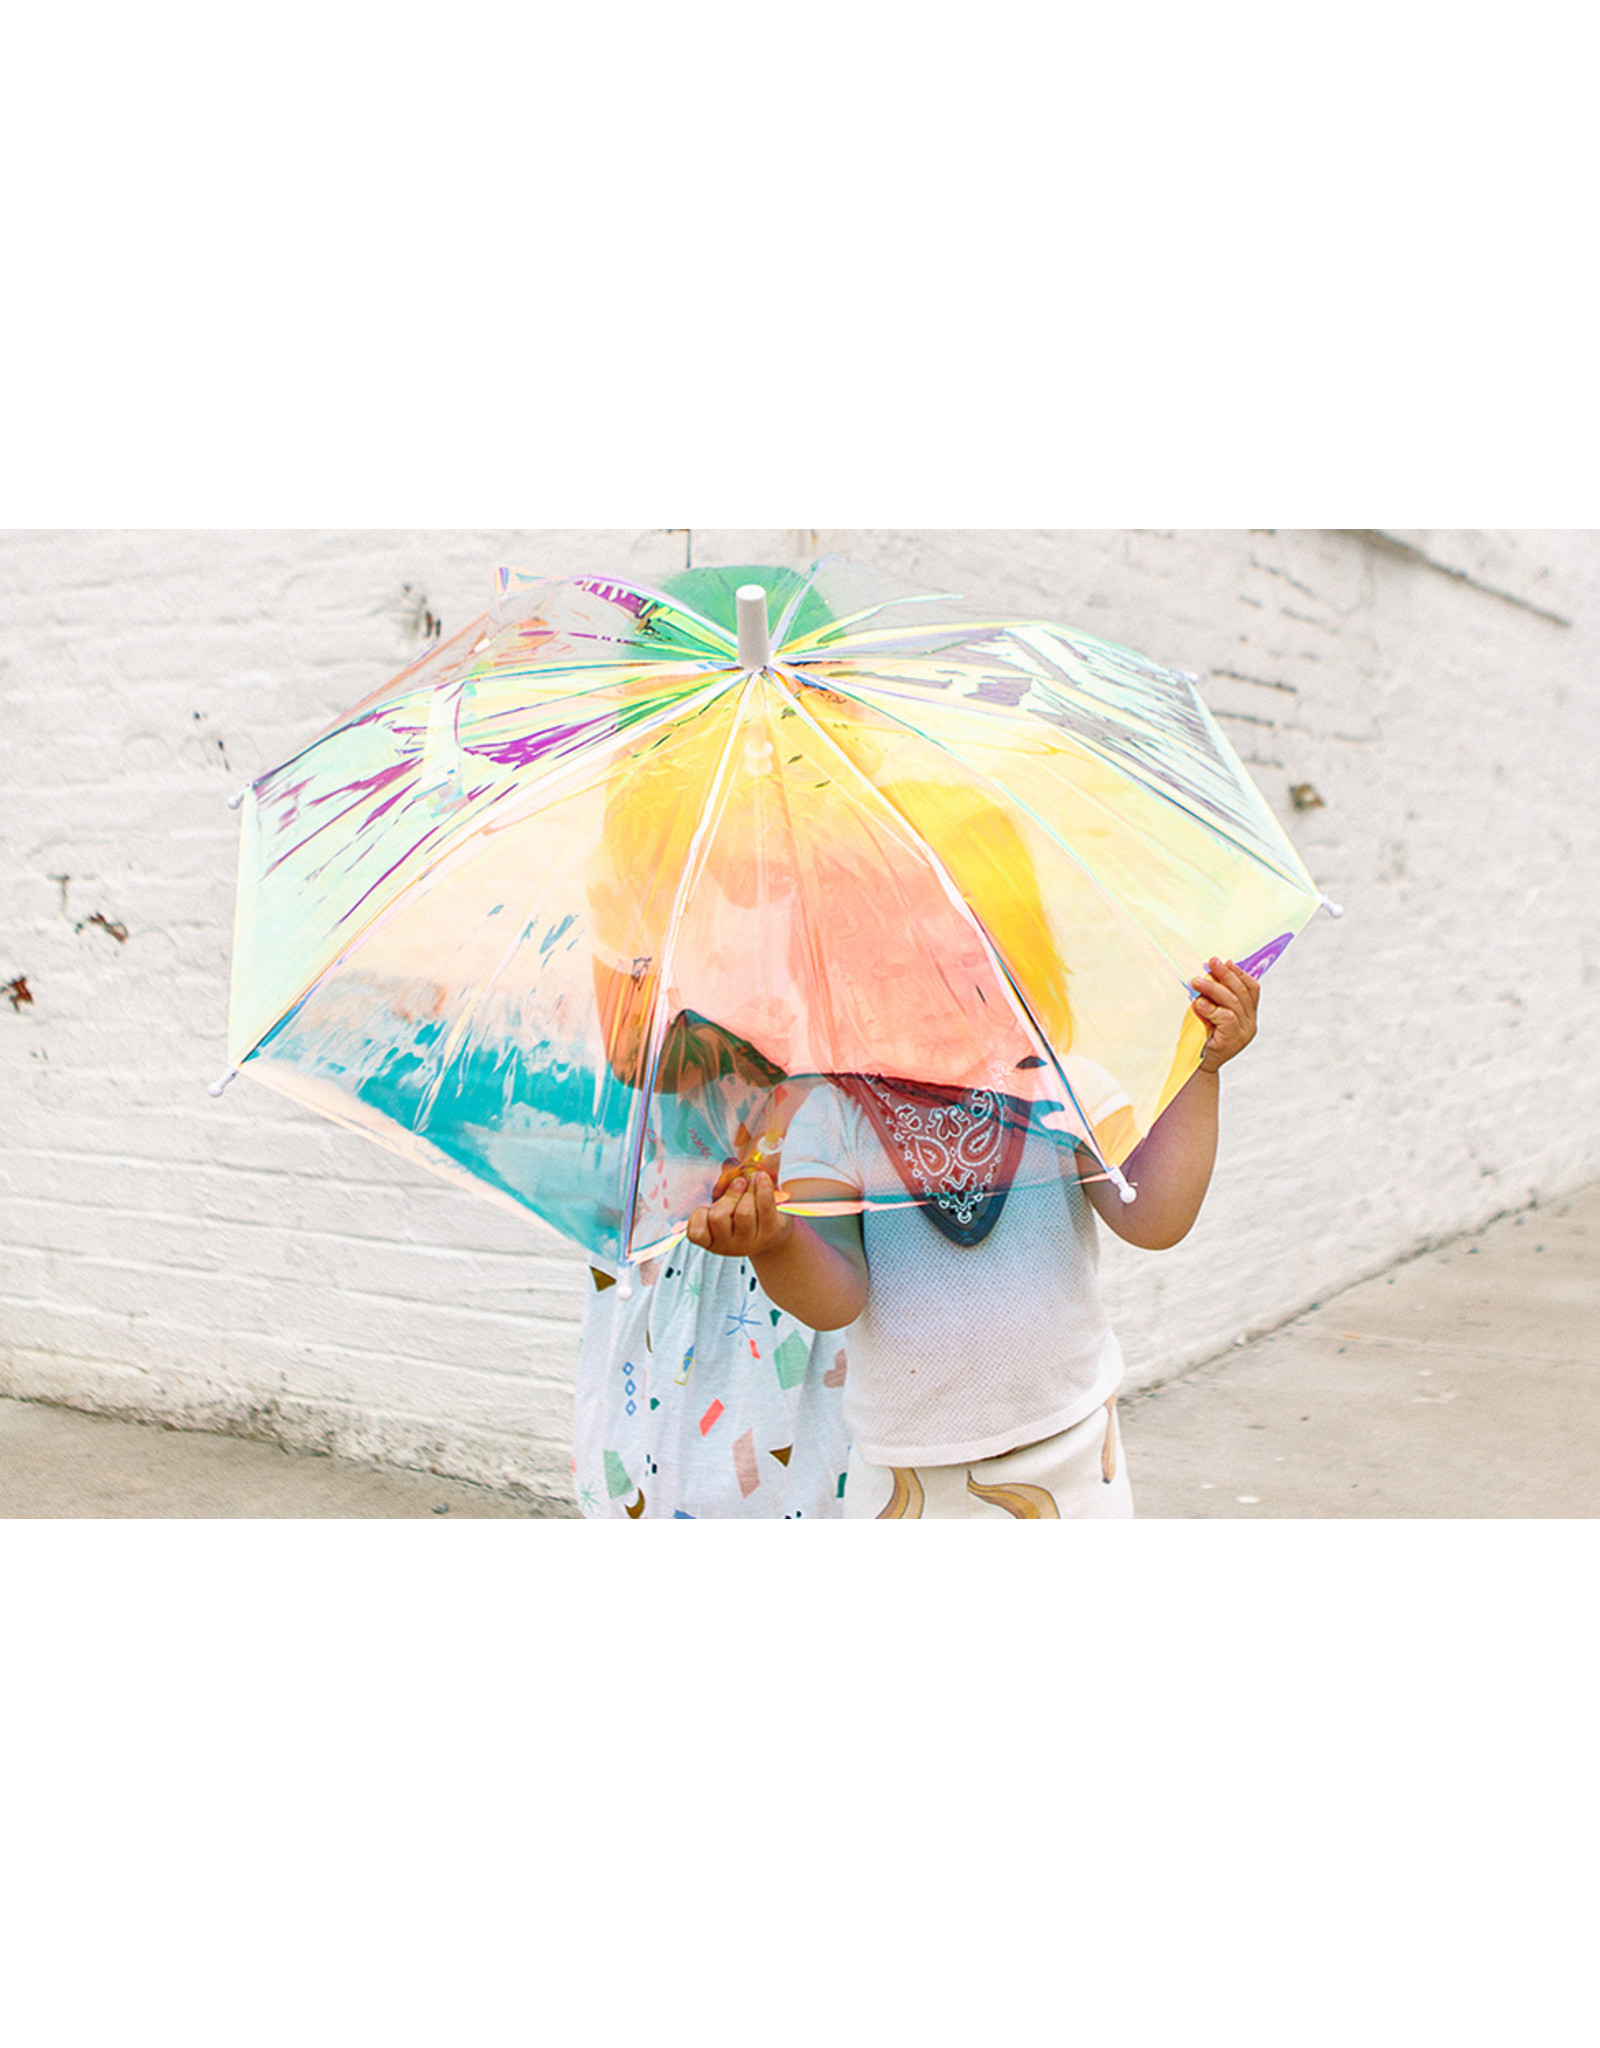 FCTRY Holographic Umbrella for Kids